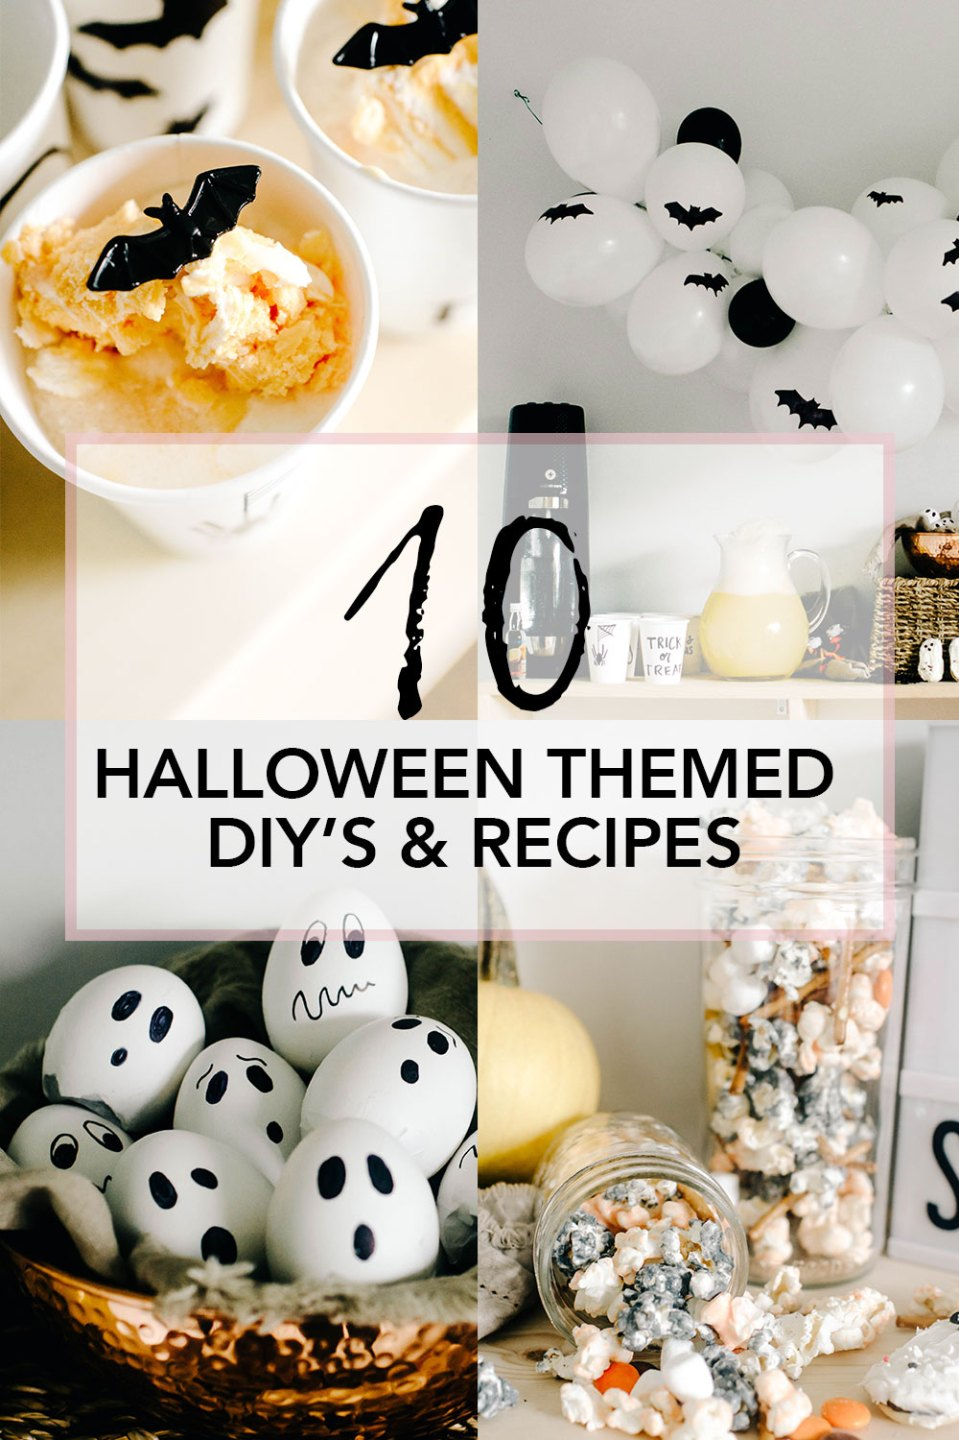 10 Simple Halloween Decor Ideas, DIY Crafts & Recipes